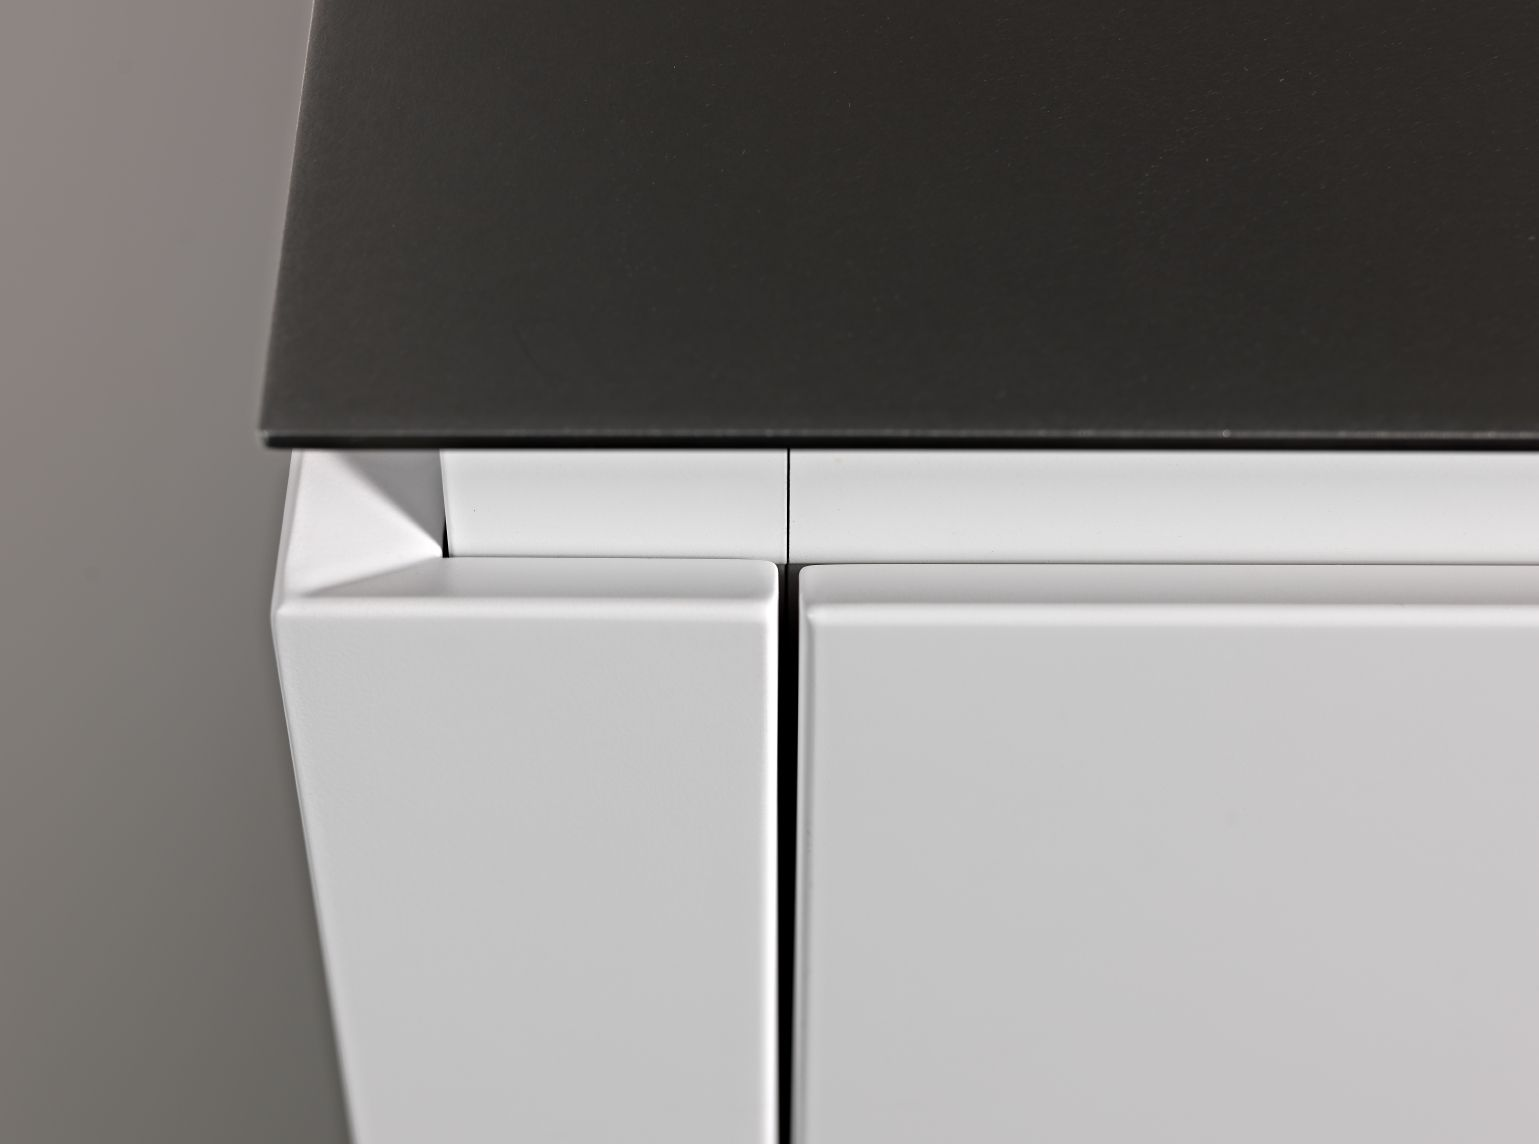 Küche Rational Solo Rational Kitchens Kitchenrational On Pinterest